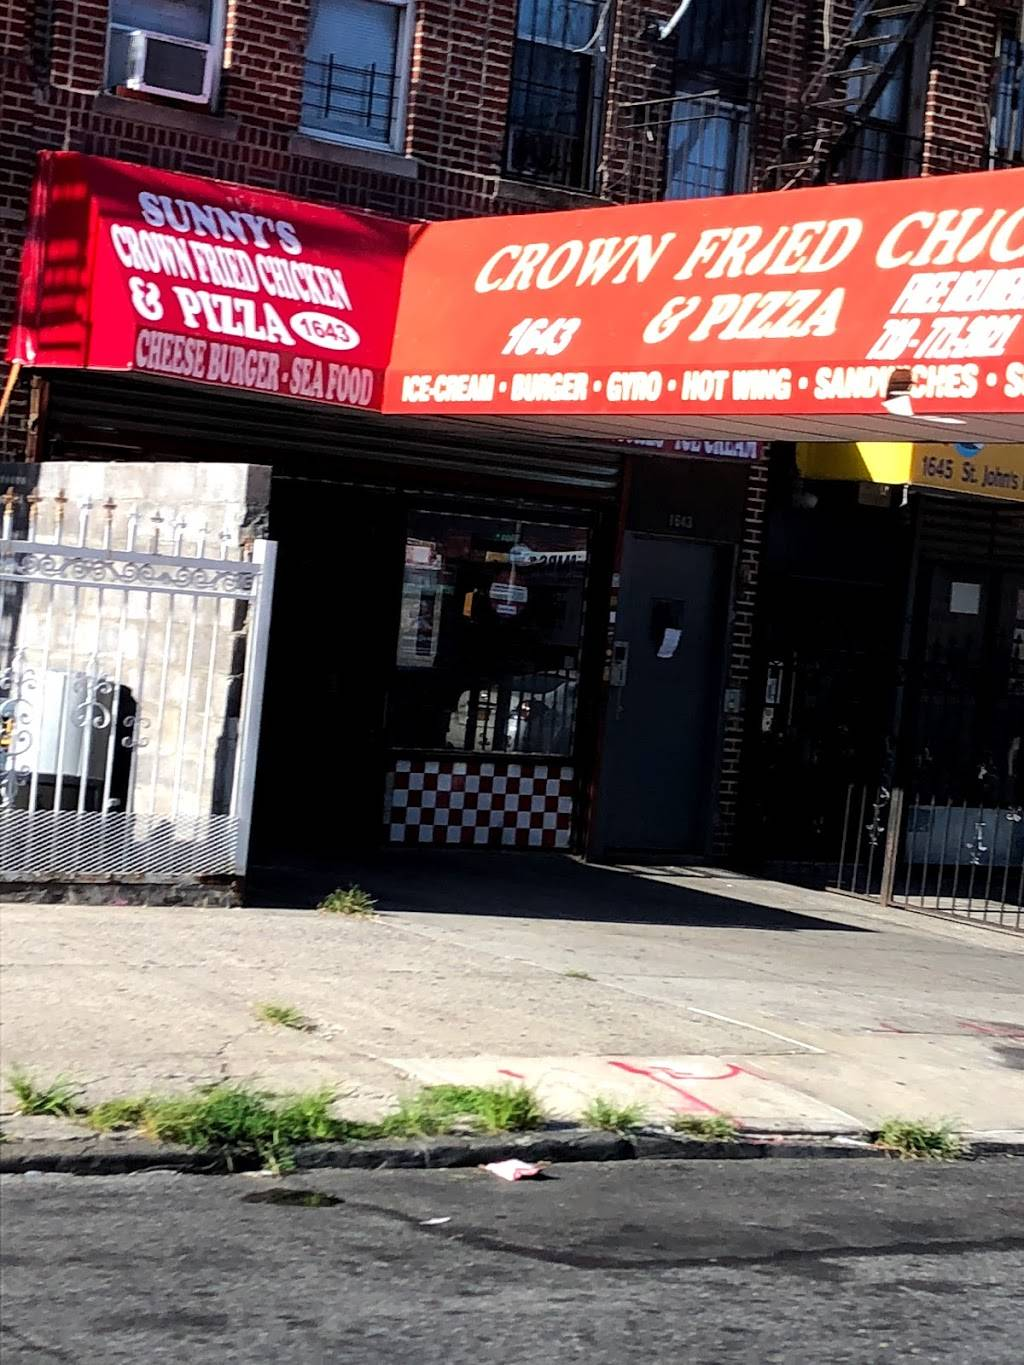 Crown Fried Chicken   restaurant   1643 St Johns Pl, Brooklyn, NY 11233, USA   7187712021 OR +1 718-771-2021